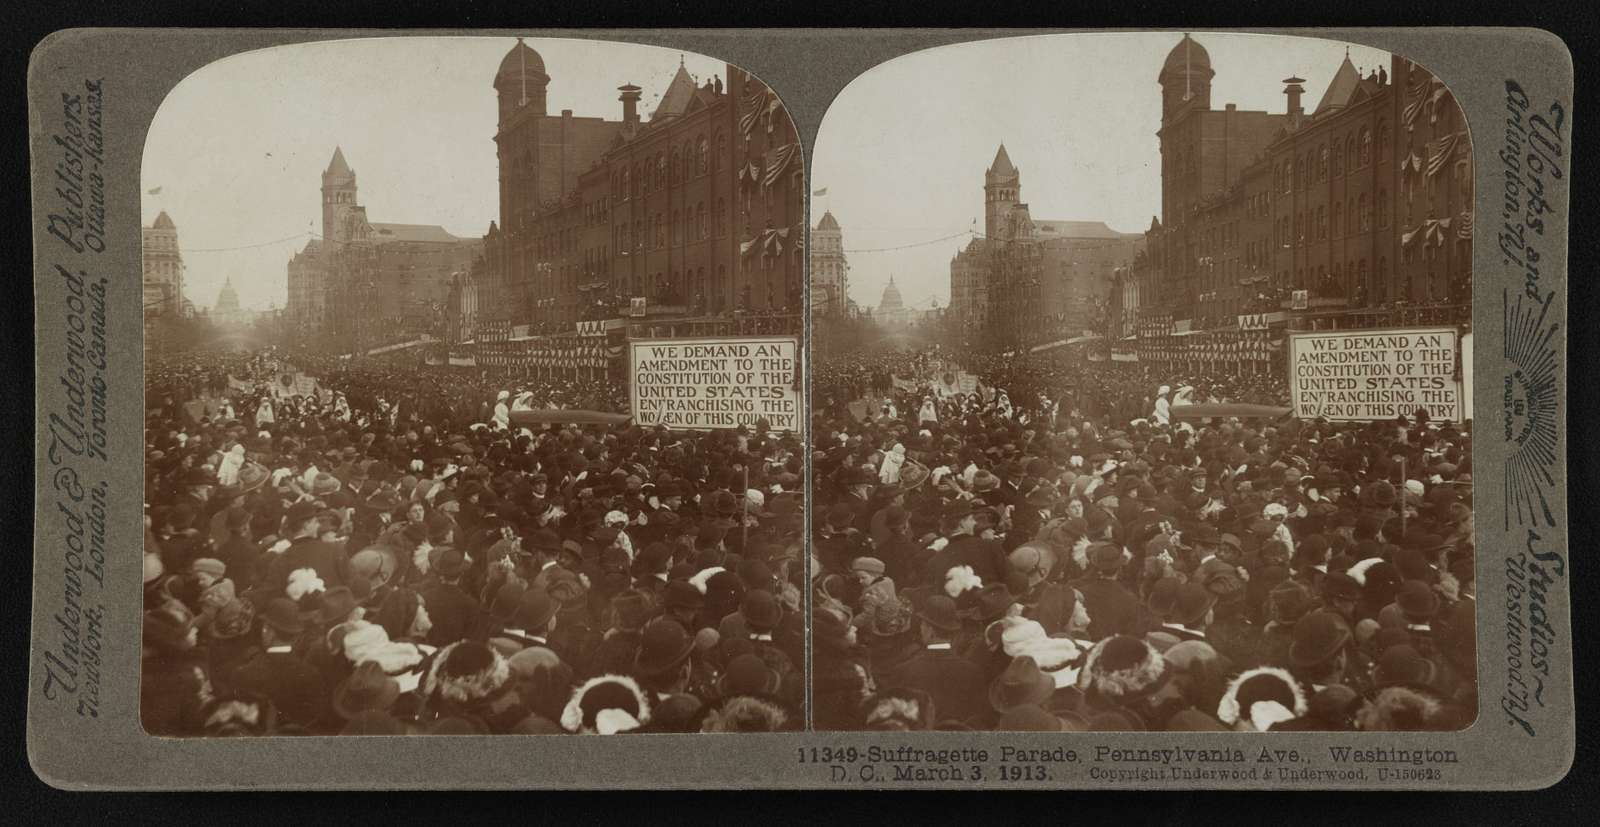 Suffragette parade, Pennsylvania Ave., Washington D.C., March 3, 1913